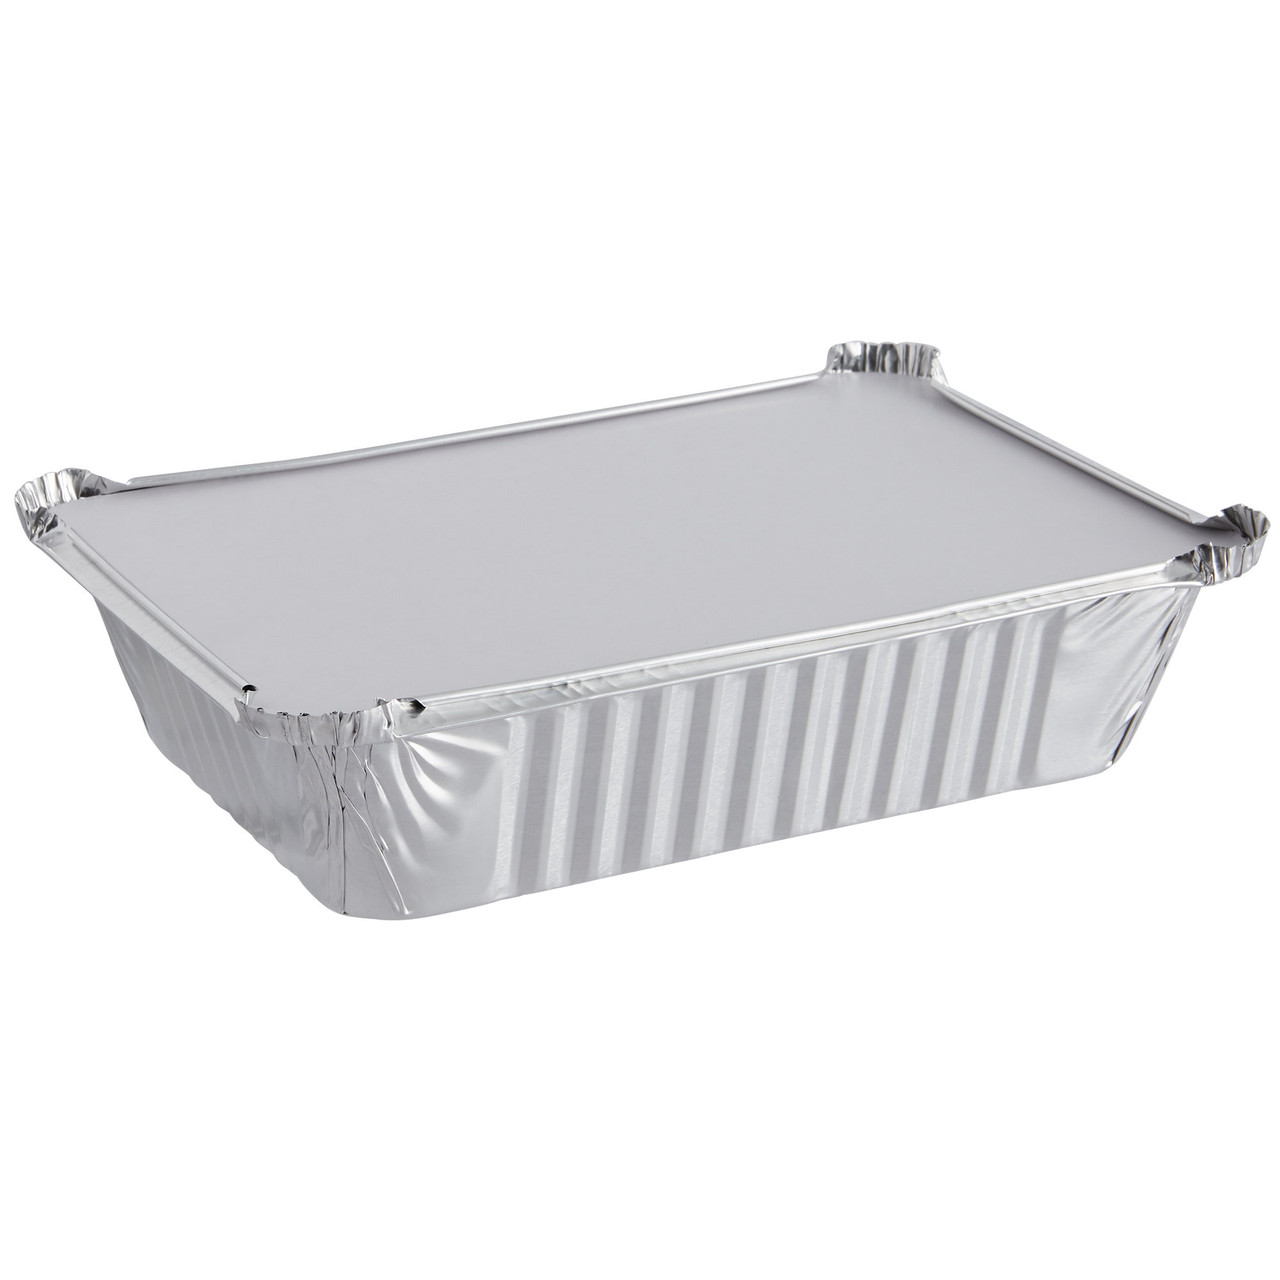 Large 2.25lb Foil Container with Lid